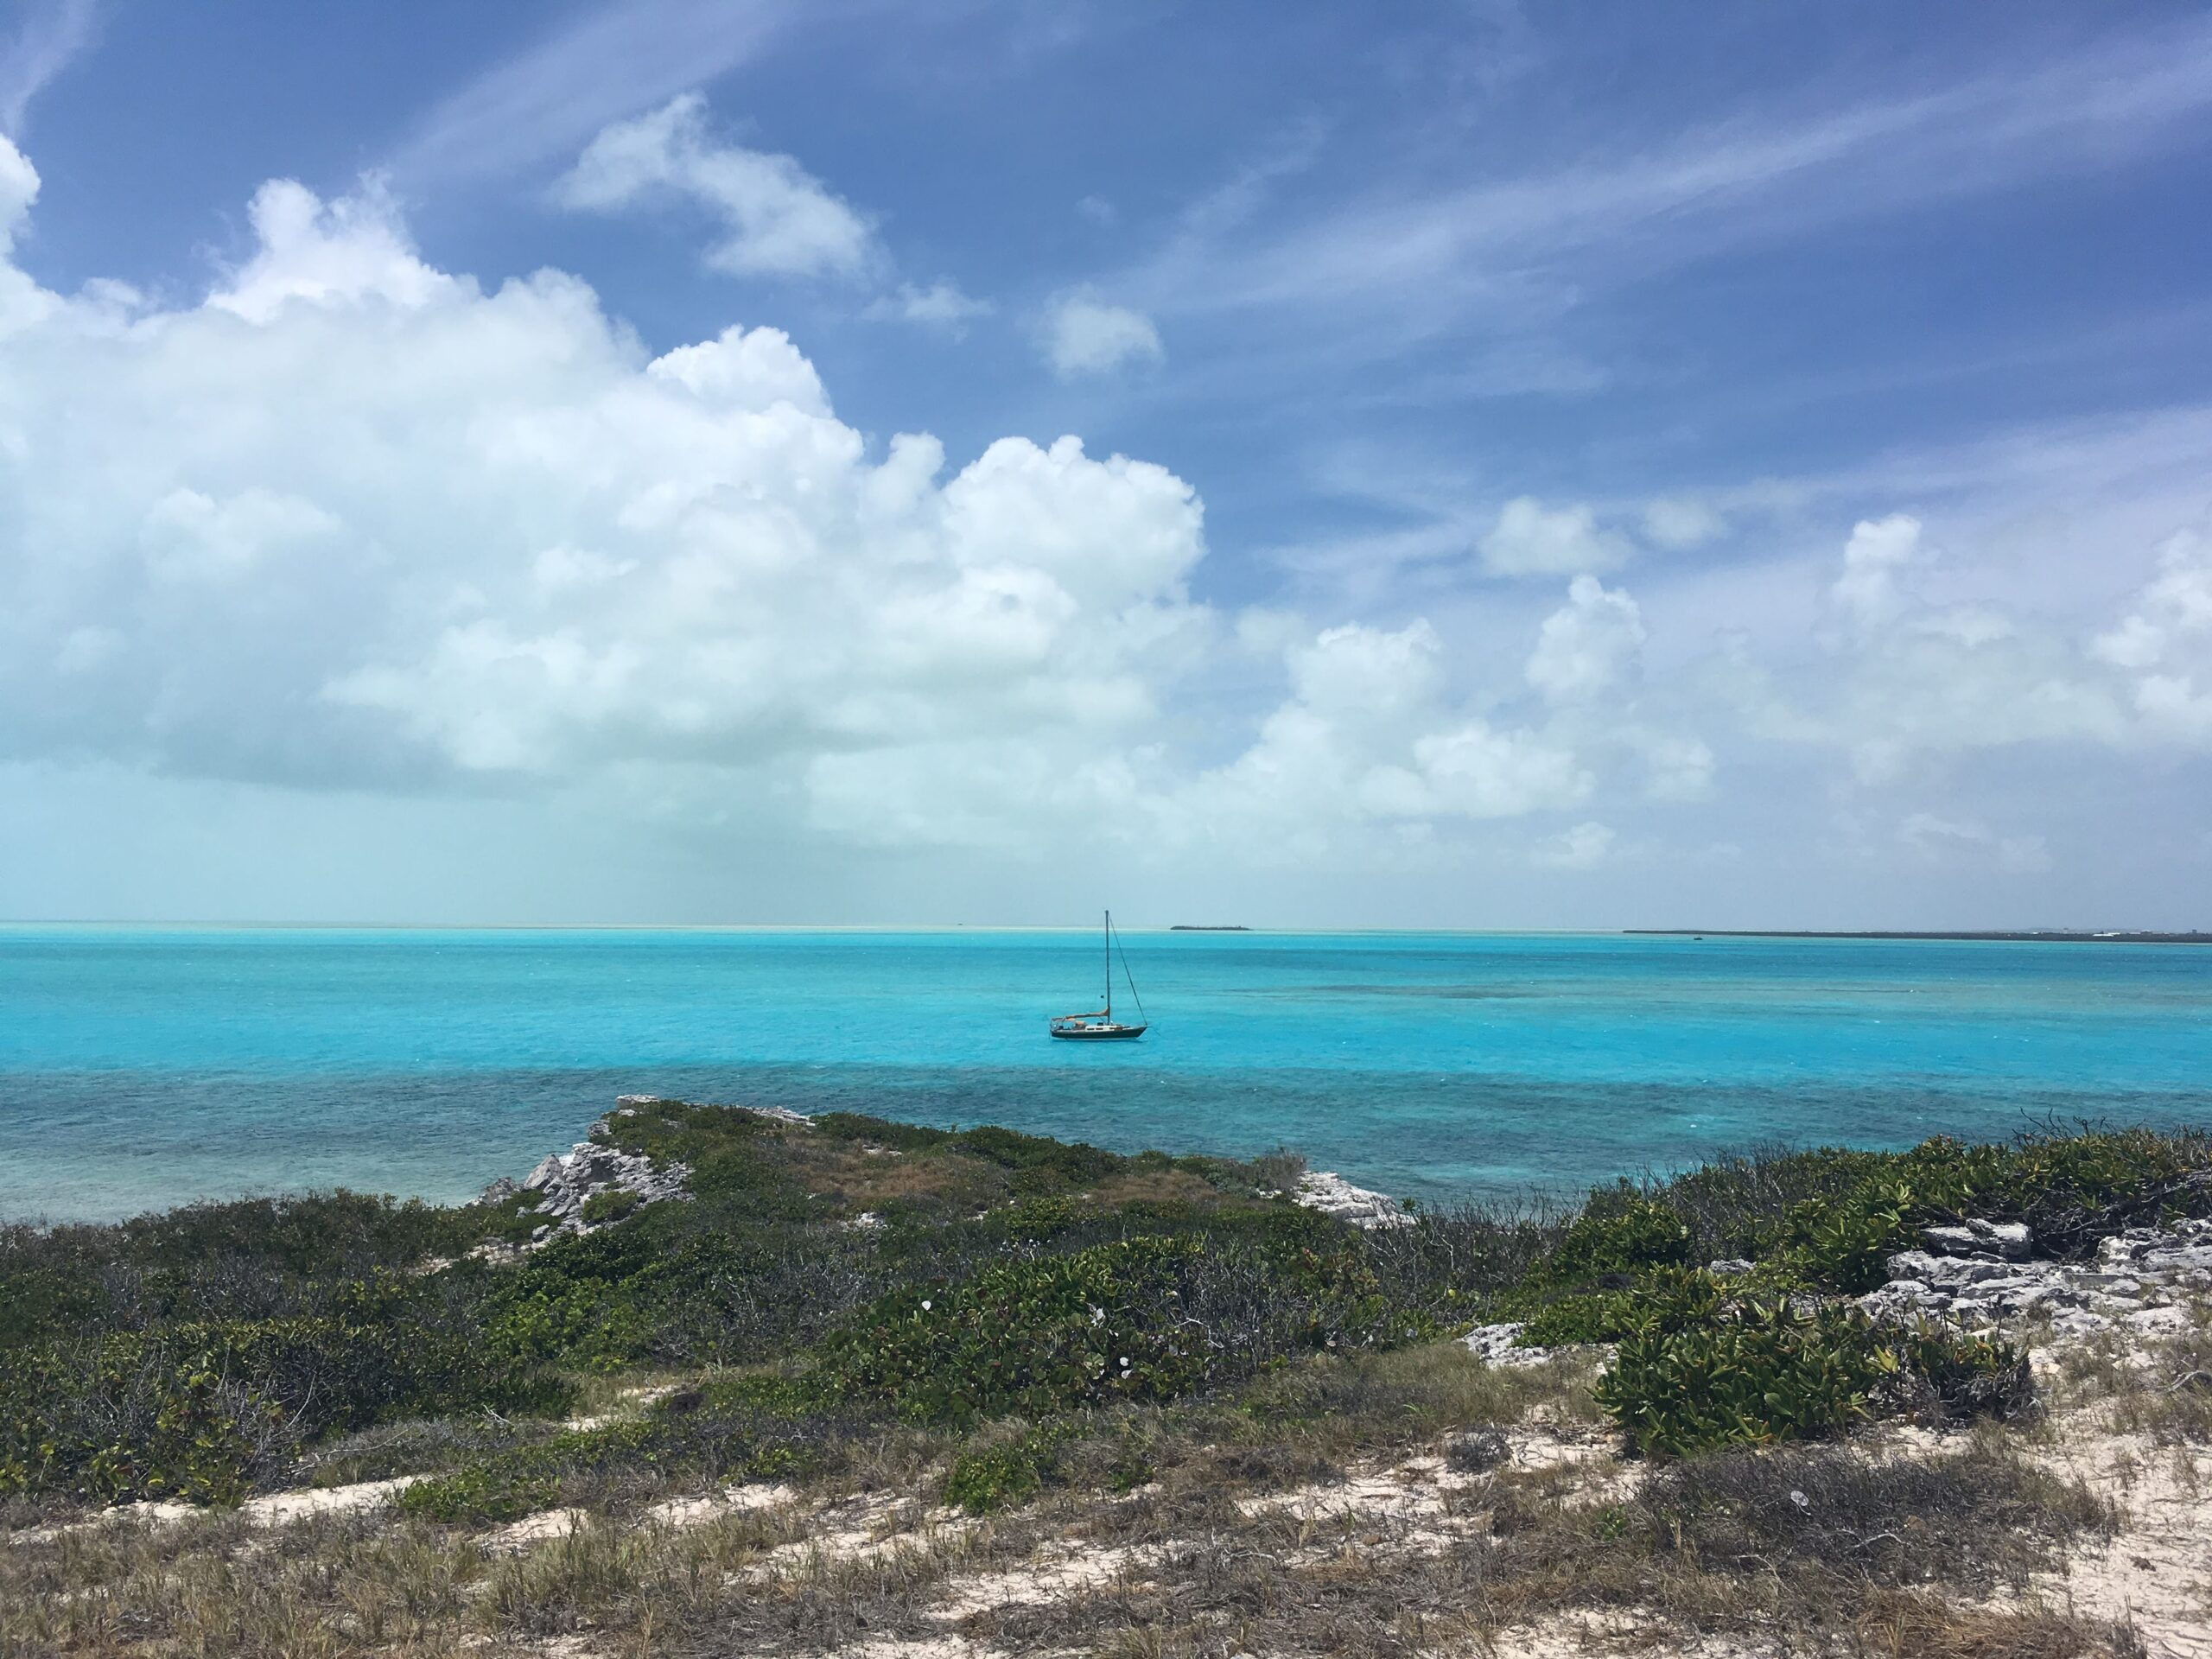 Anchored out in South Caicos, Turks & Caicos